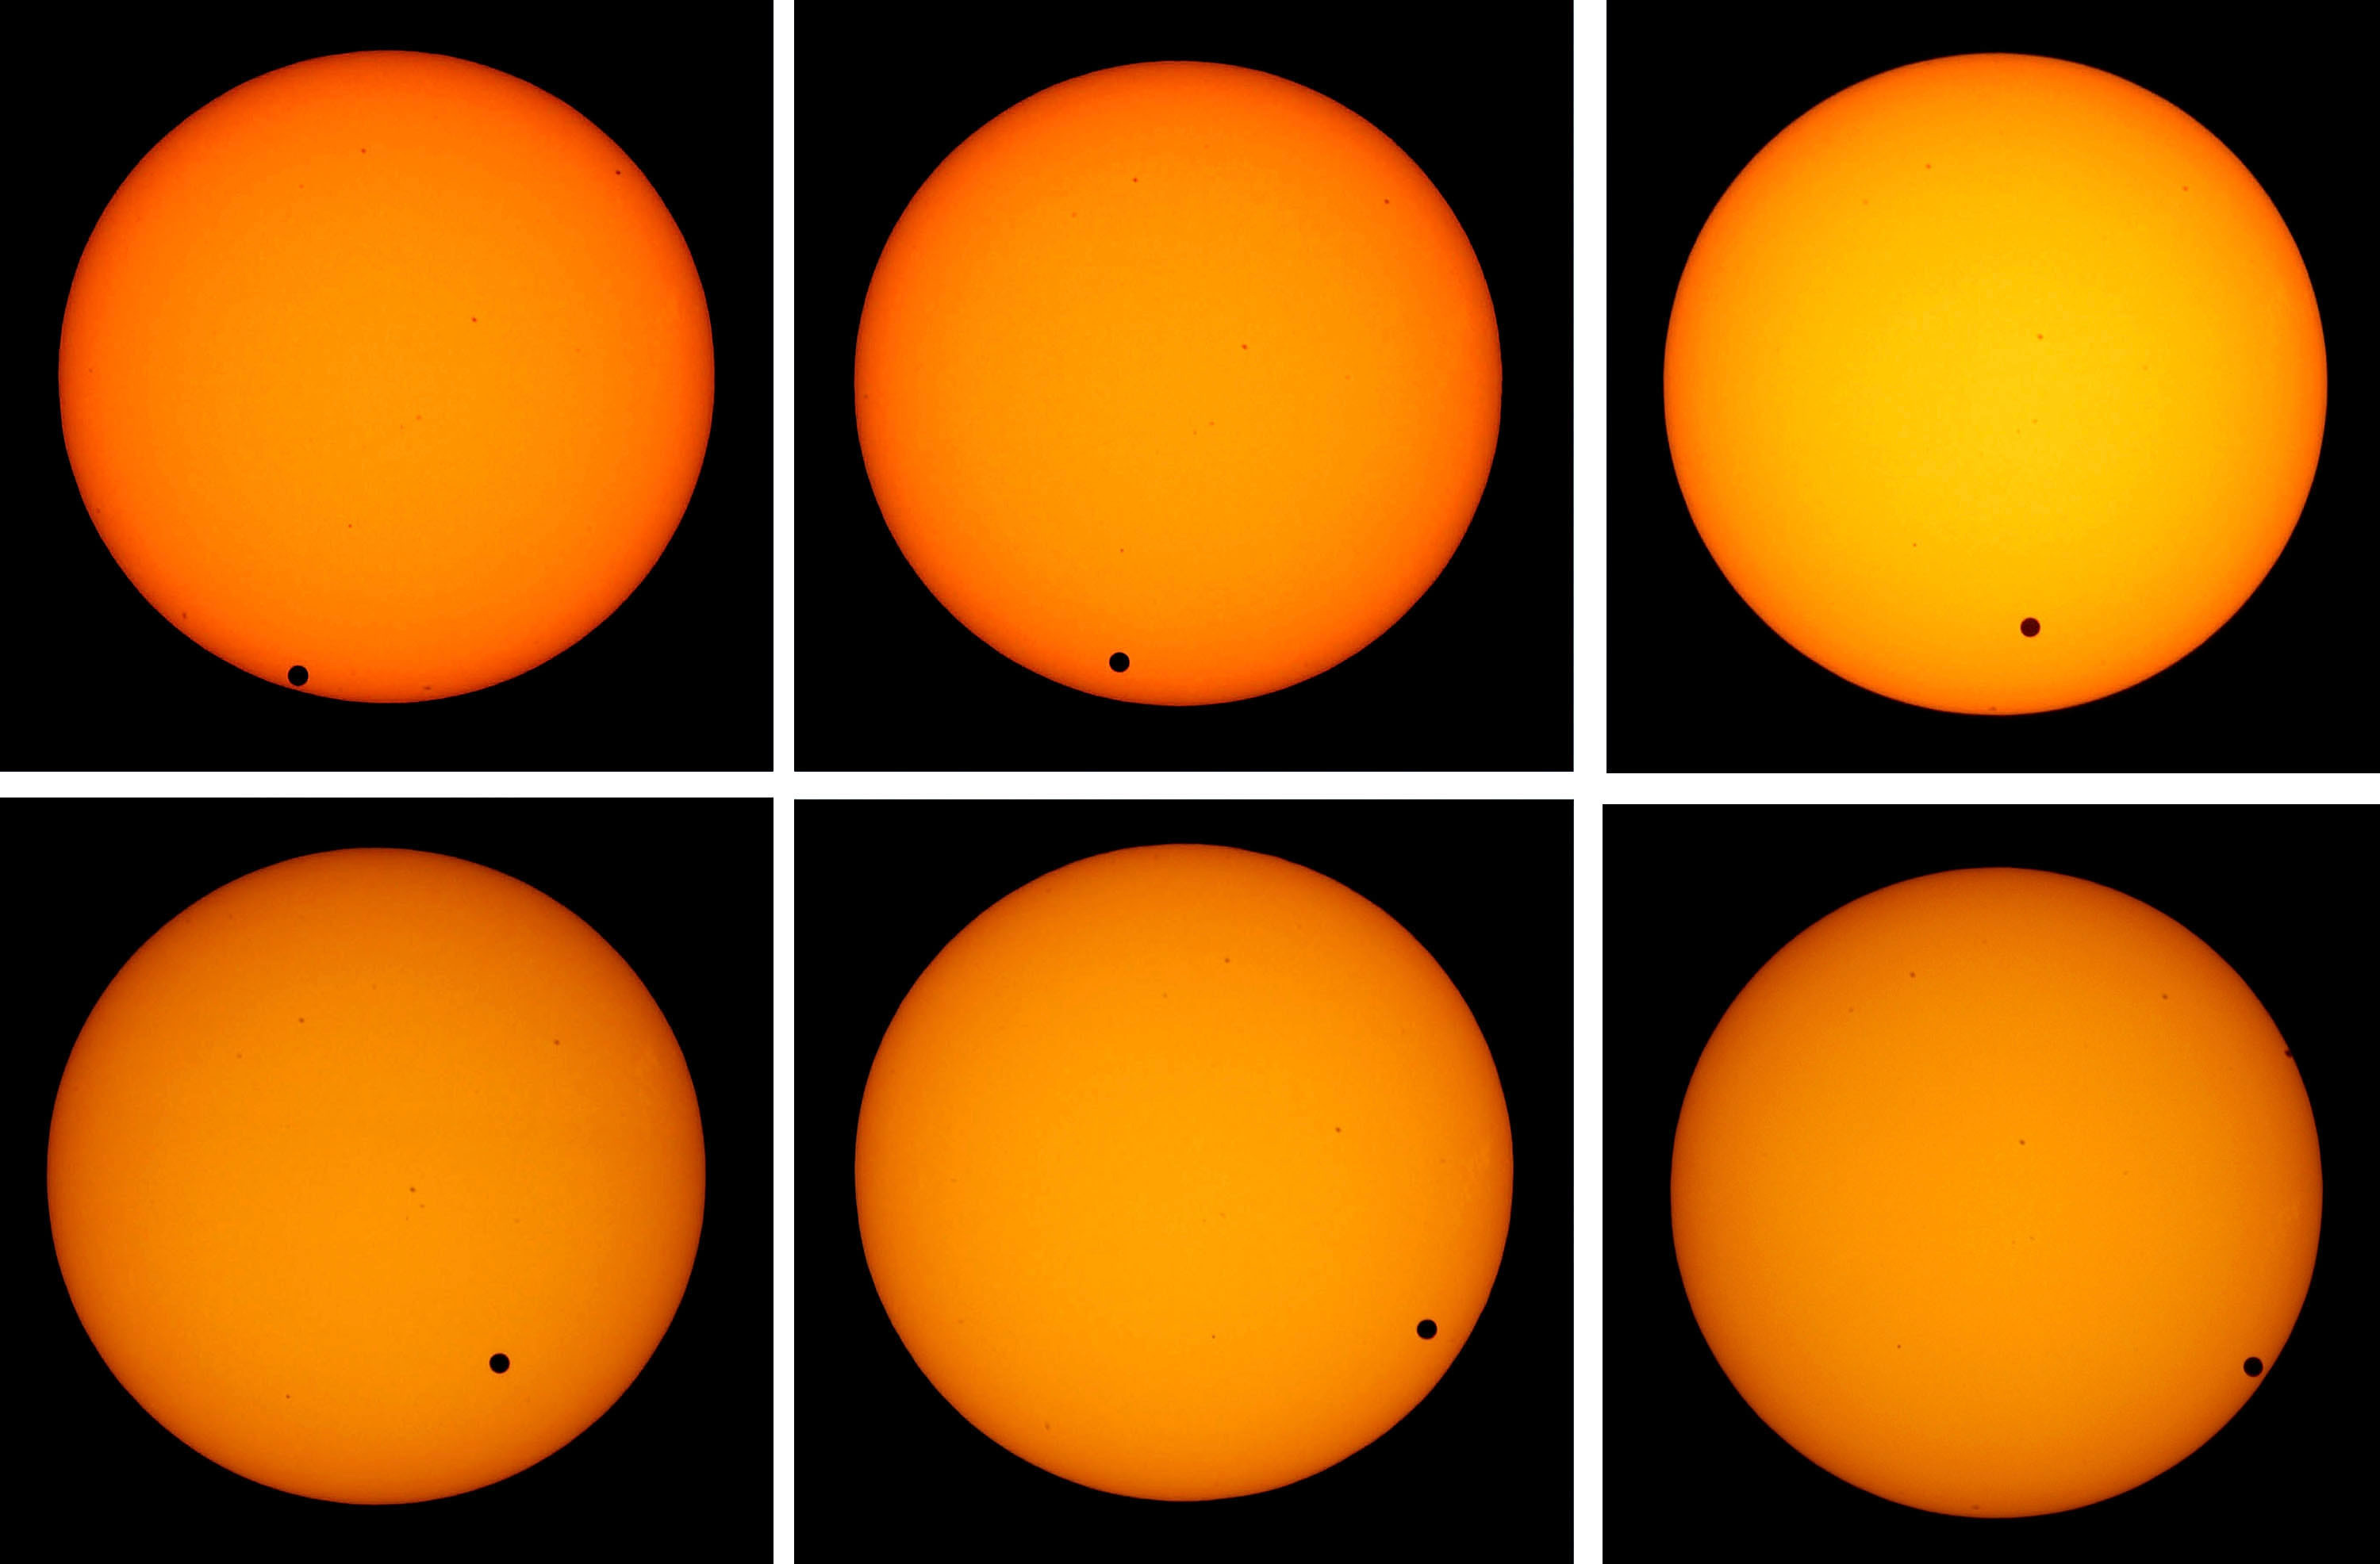 The Transit Of Venus: The planet Venus appears as a tiny black dot as it transits across the face of the sun on June 8, 2004. The rare astronomical event will take place again on June 5, 2012.